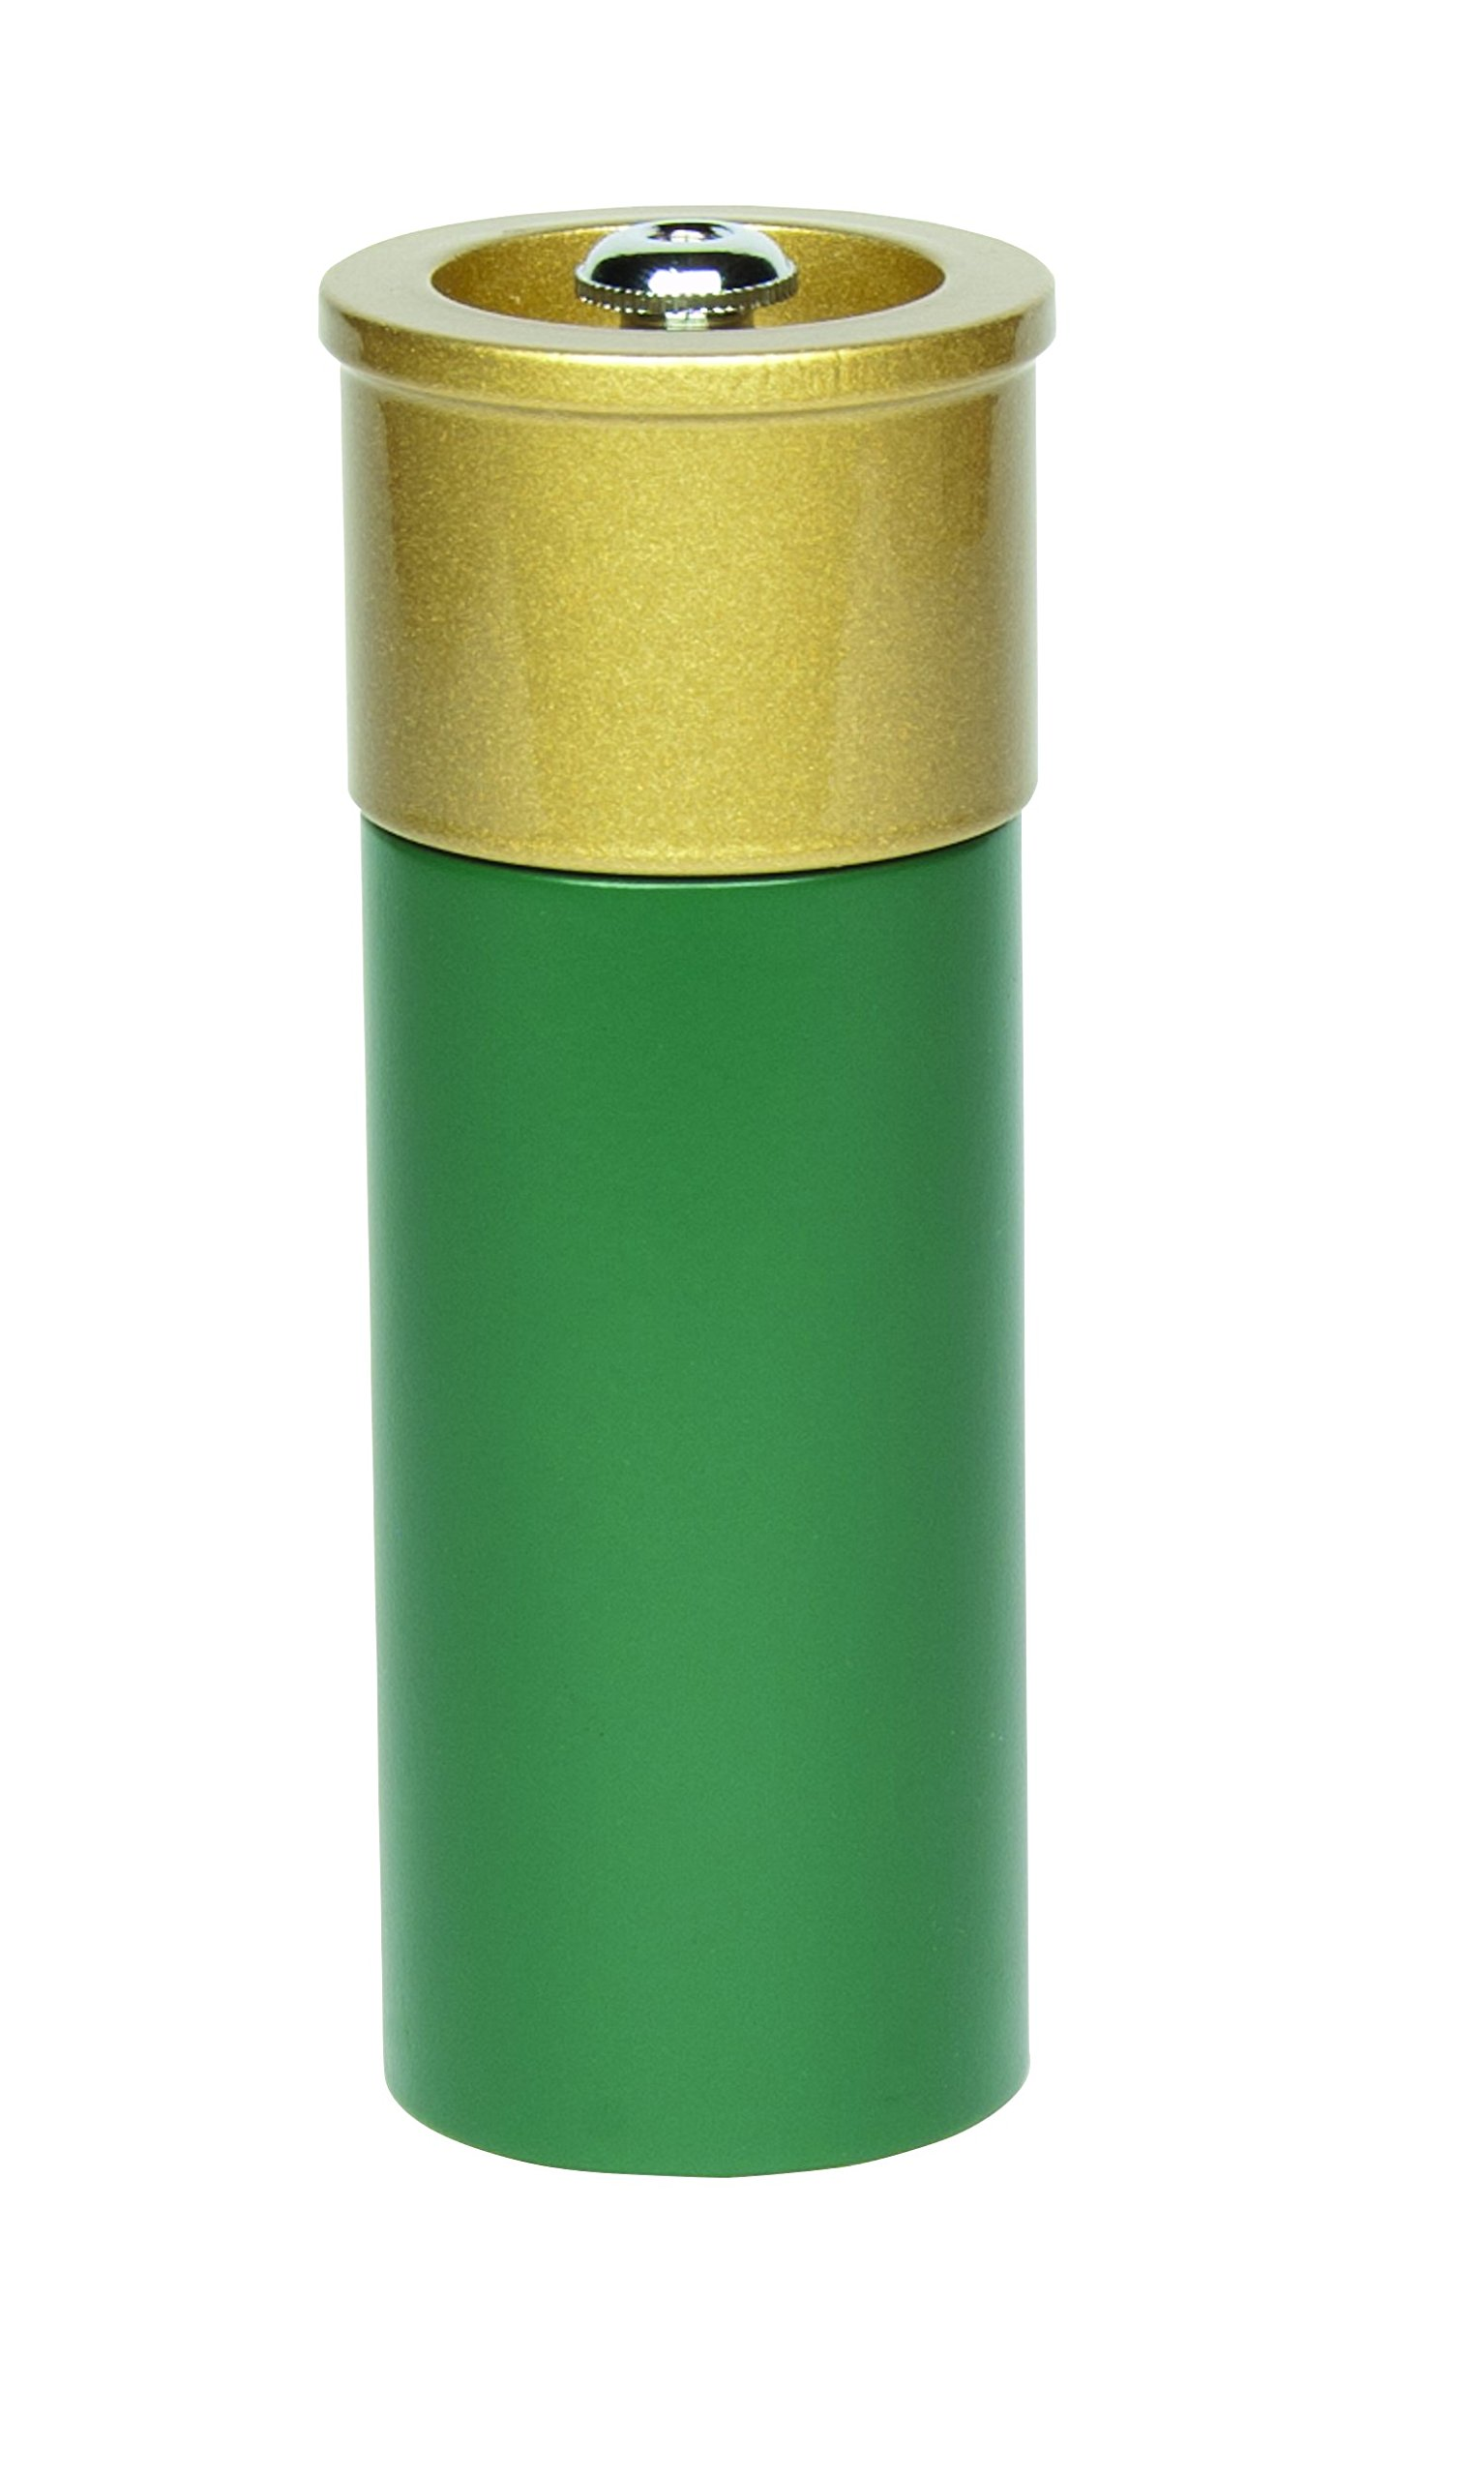 Fletchers' Mill Shotgun Shell Salt Mill, Green - 5 Inch